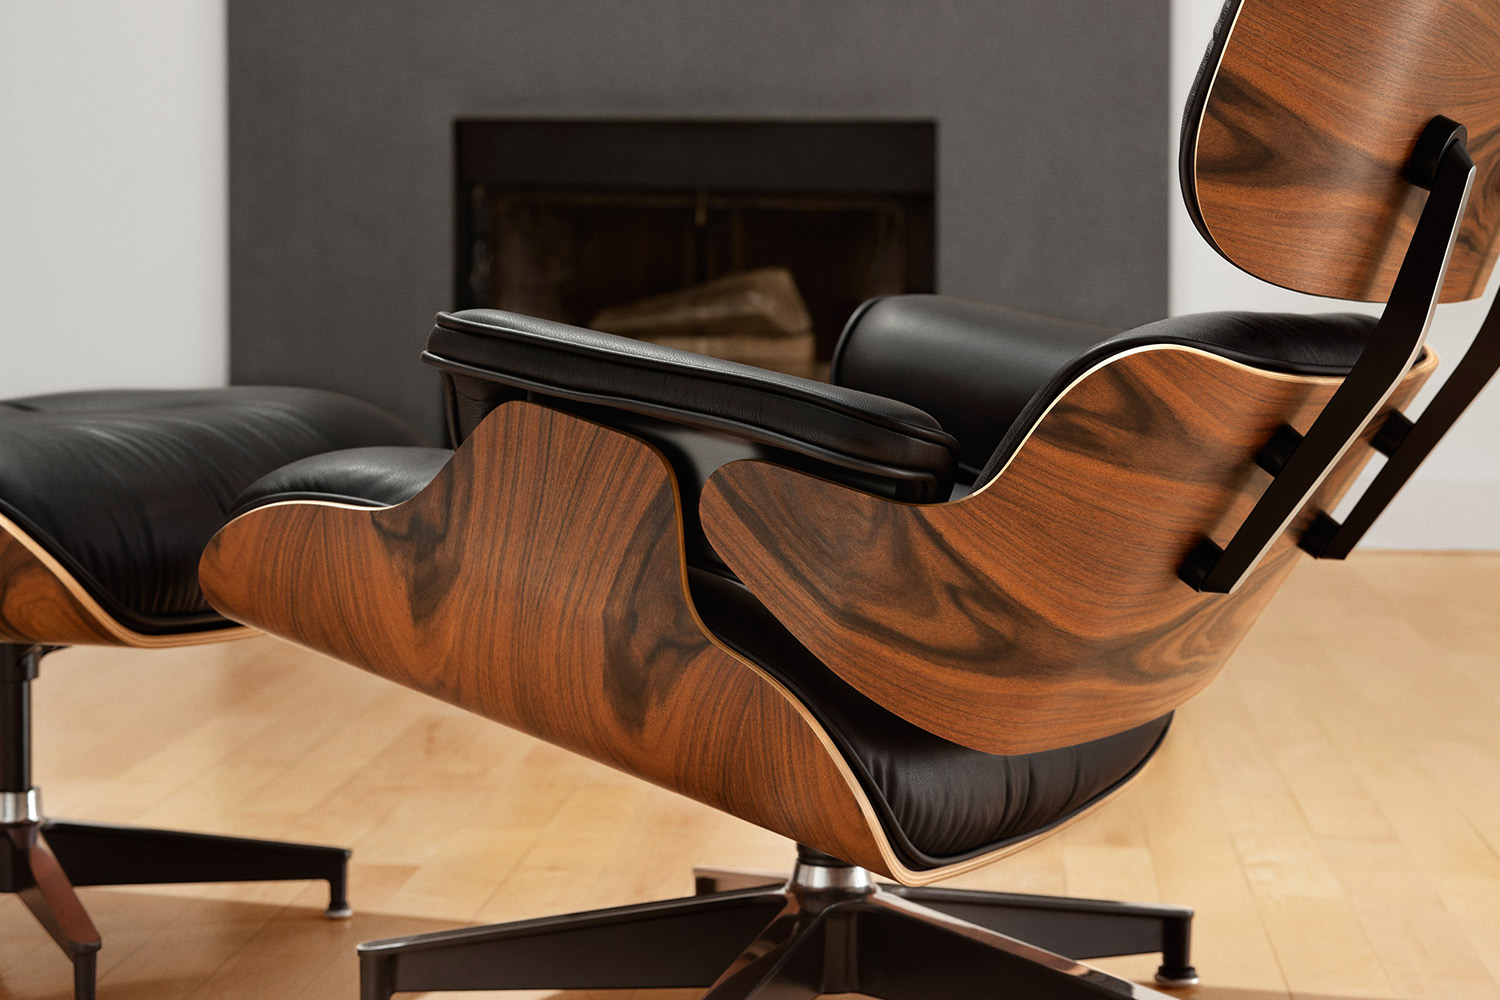 Original eames chair - How To Tell If Your Eames Lounge Chair Is Real Vs Fake